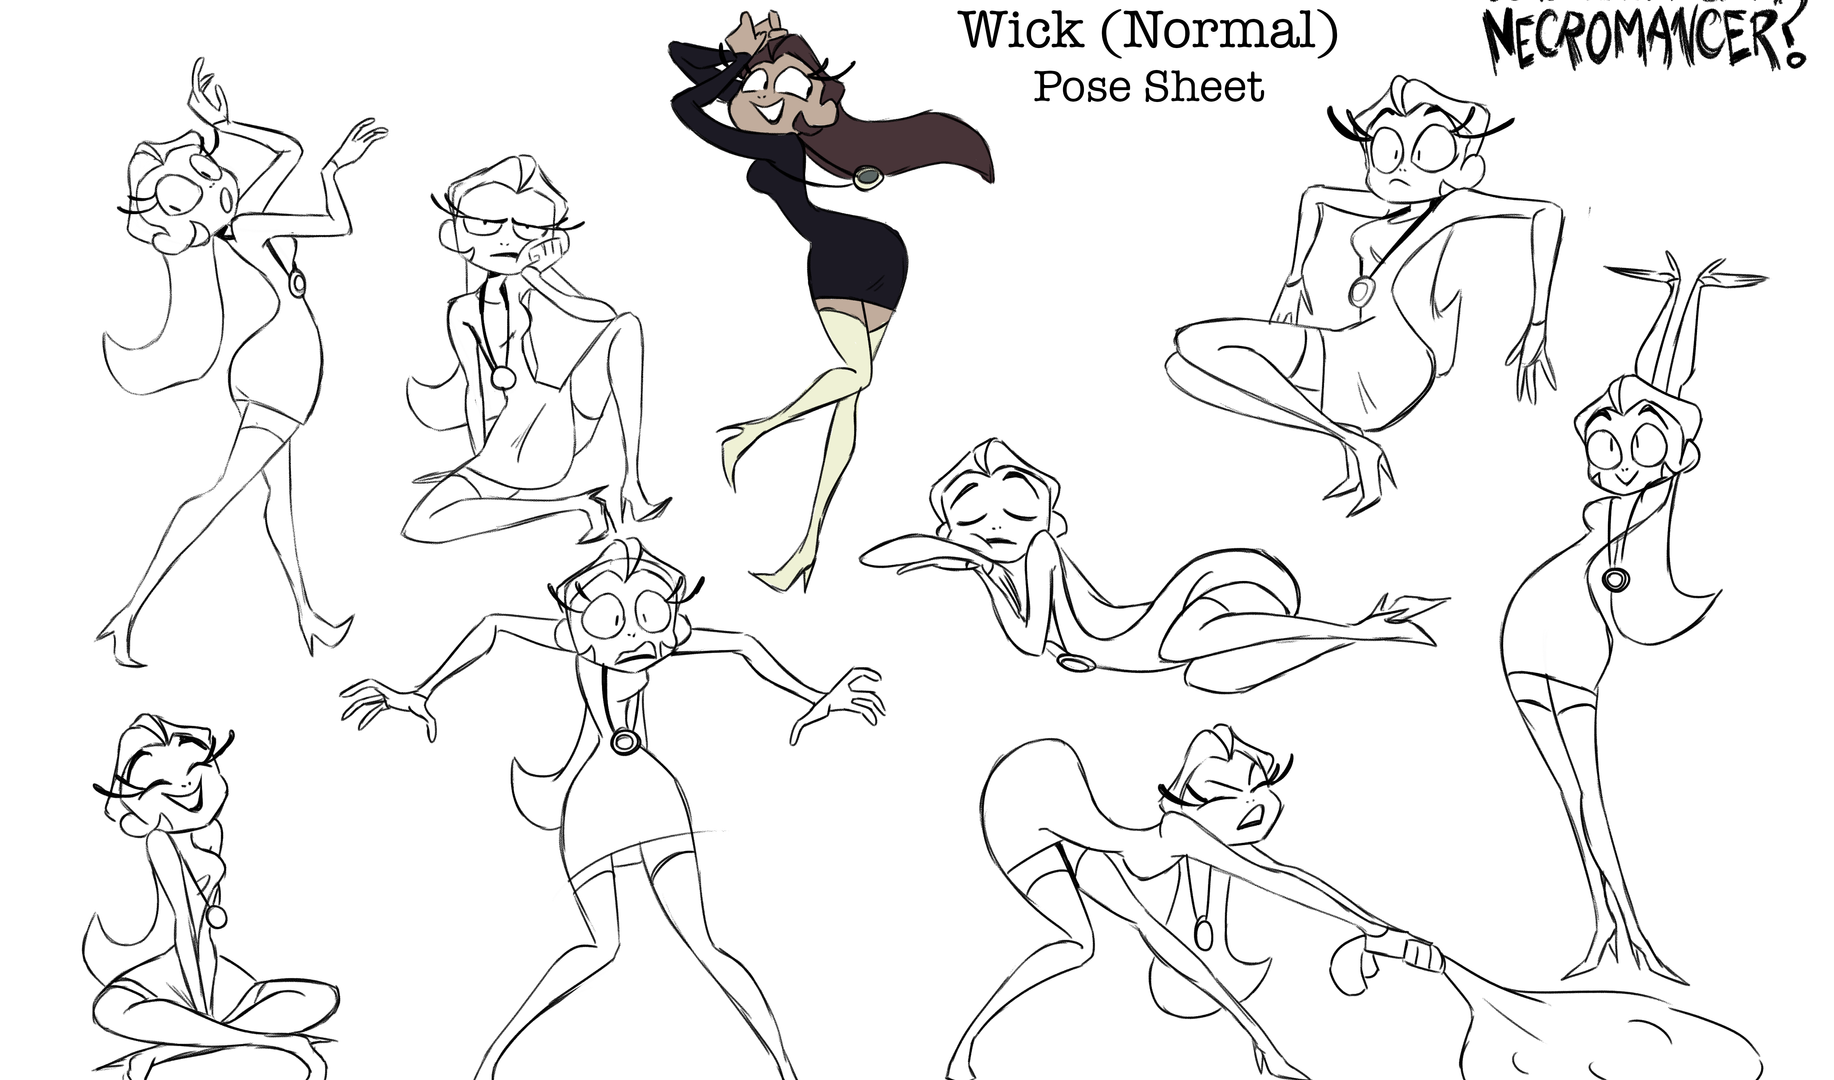 Pose Sheet - Wick (Normal)